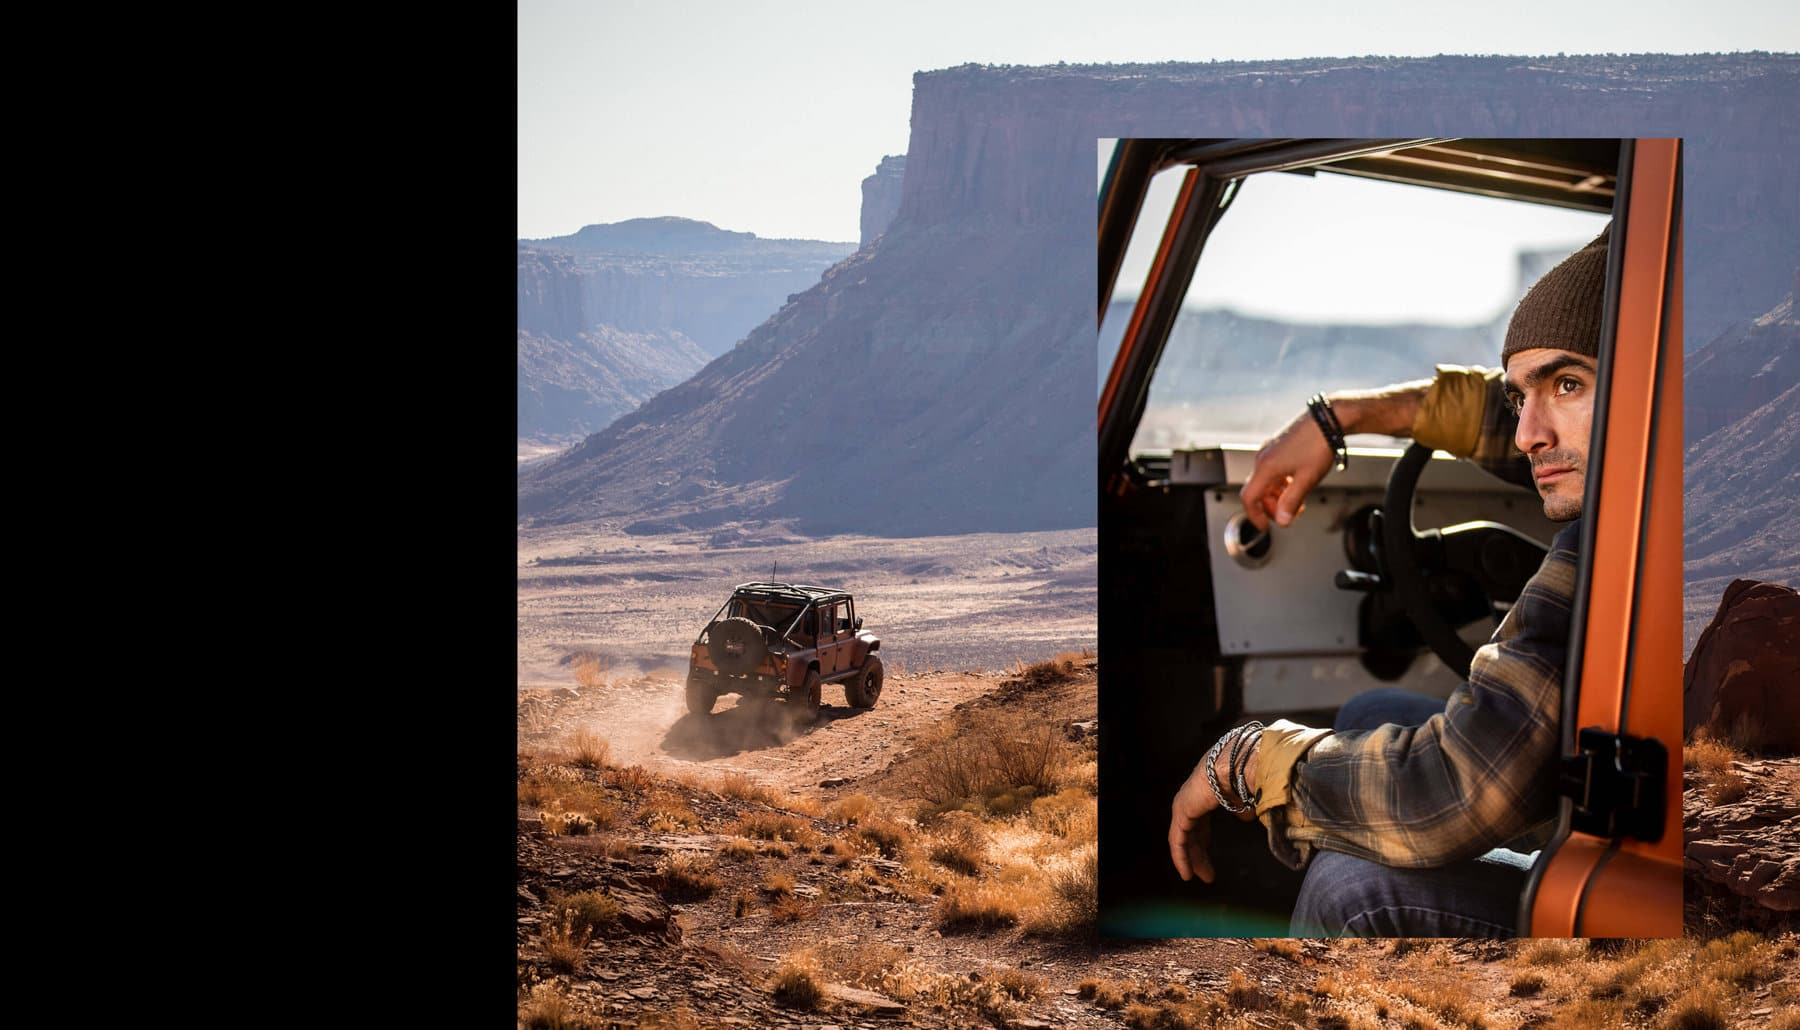 A photo collage juxtaposes a quote from Jimmy Chin with two color photos. One image shows a Jeep driving towards a canyon by Moab, Utah. Another shows climber Sam Elias sitting in the driver's seat of a Jeep wearing David Yurman men's jewelry.